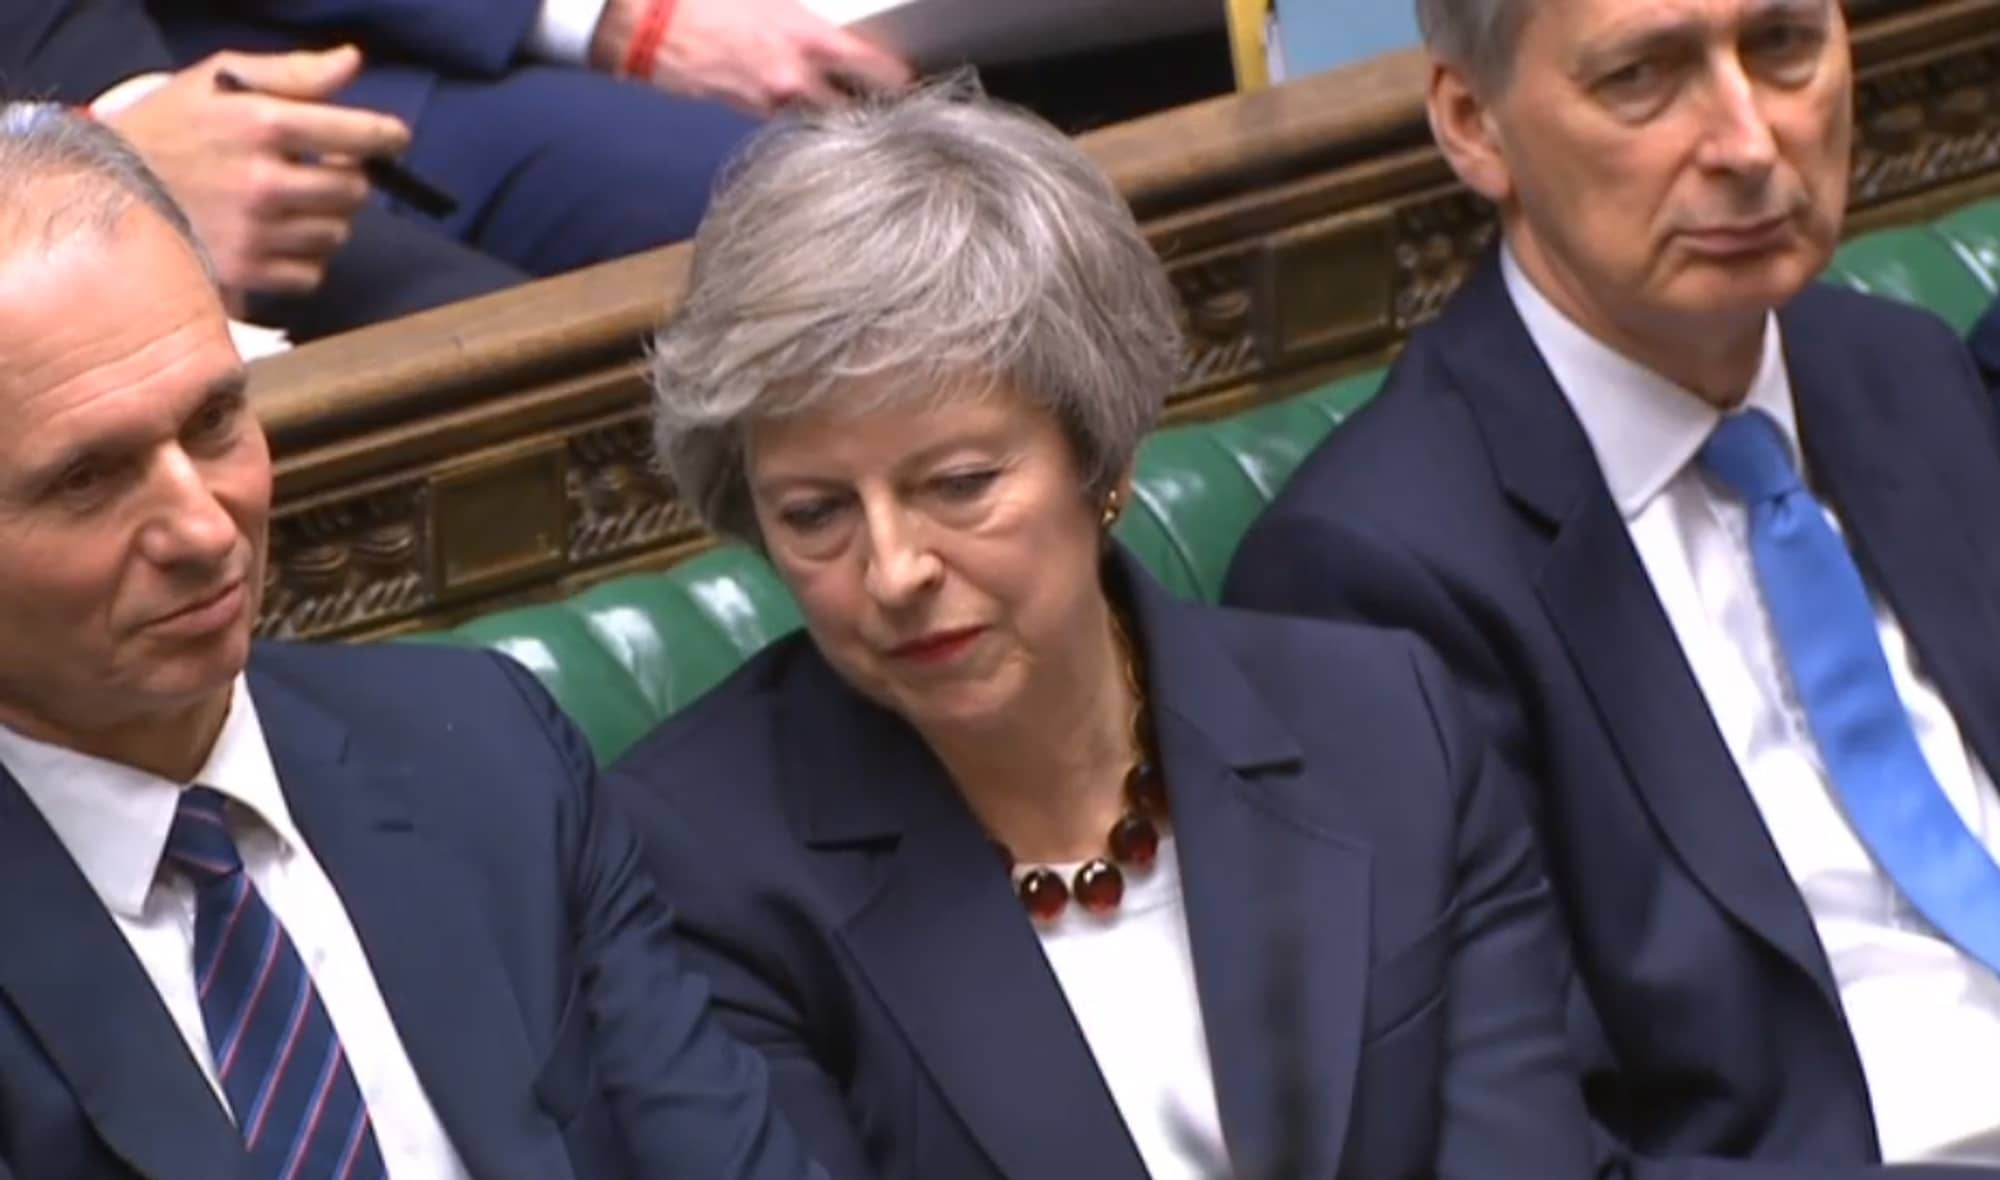 Theresa May makes last-ditch Brexit bid to win over UK lawmakers